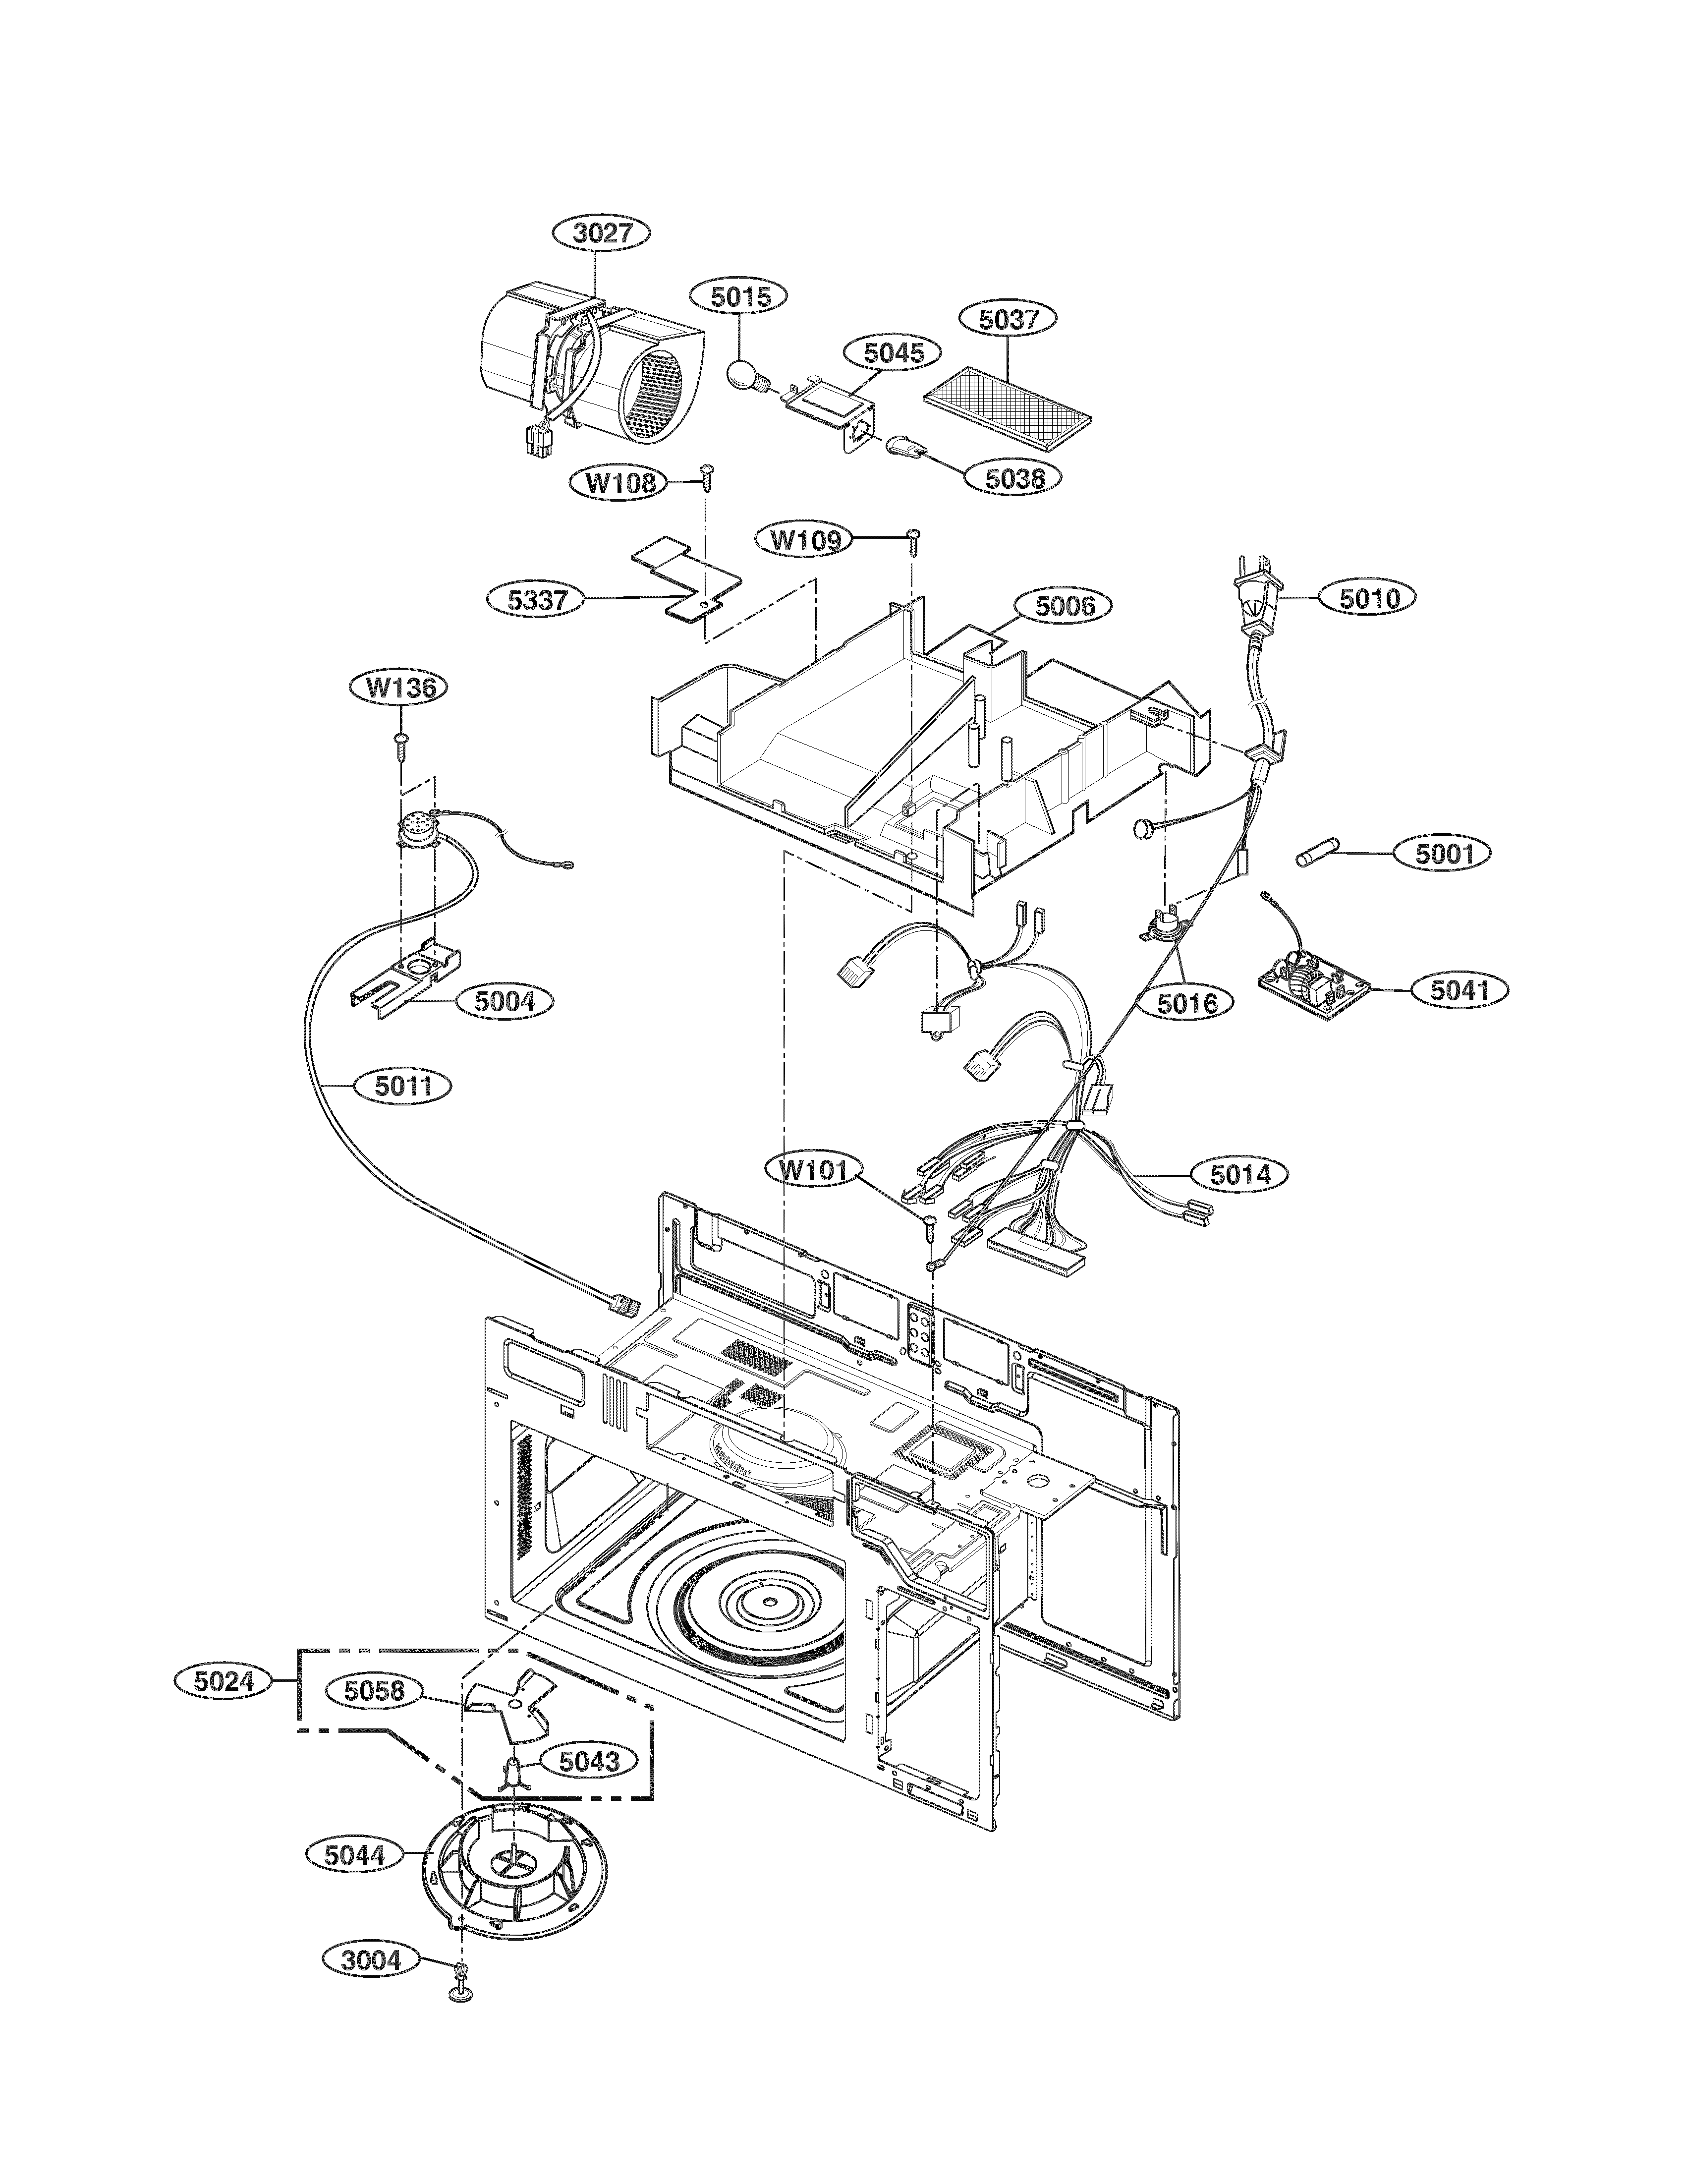 Kenmore Microwave Model 721 85063010 Wiring Schematic